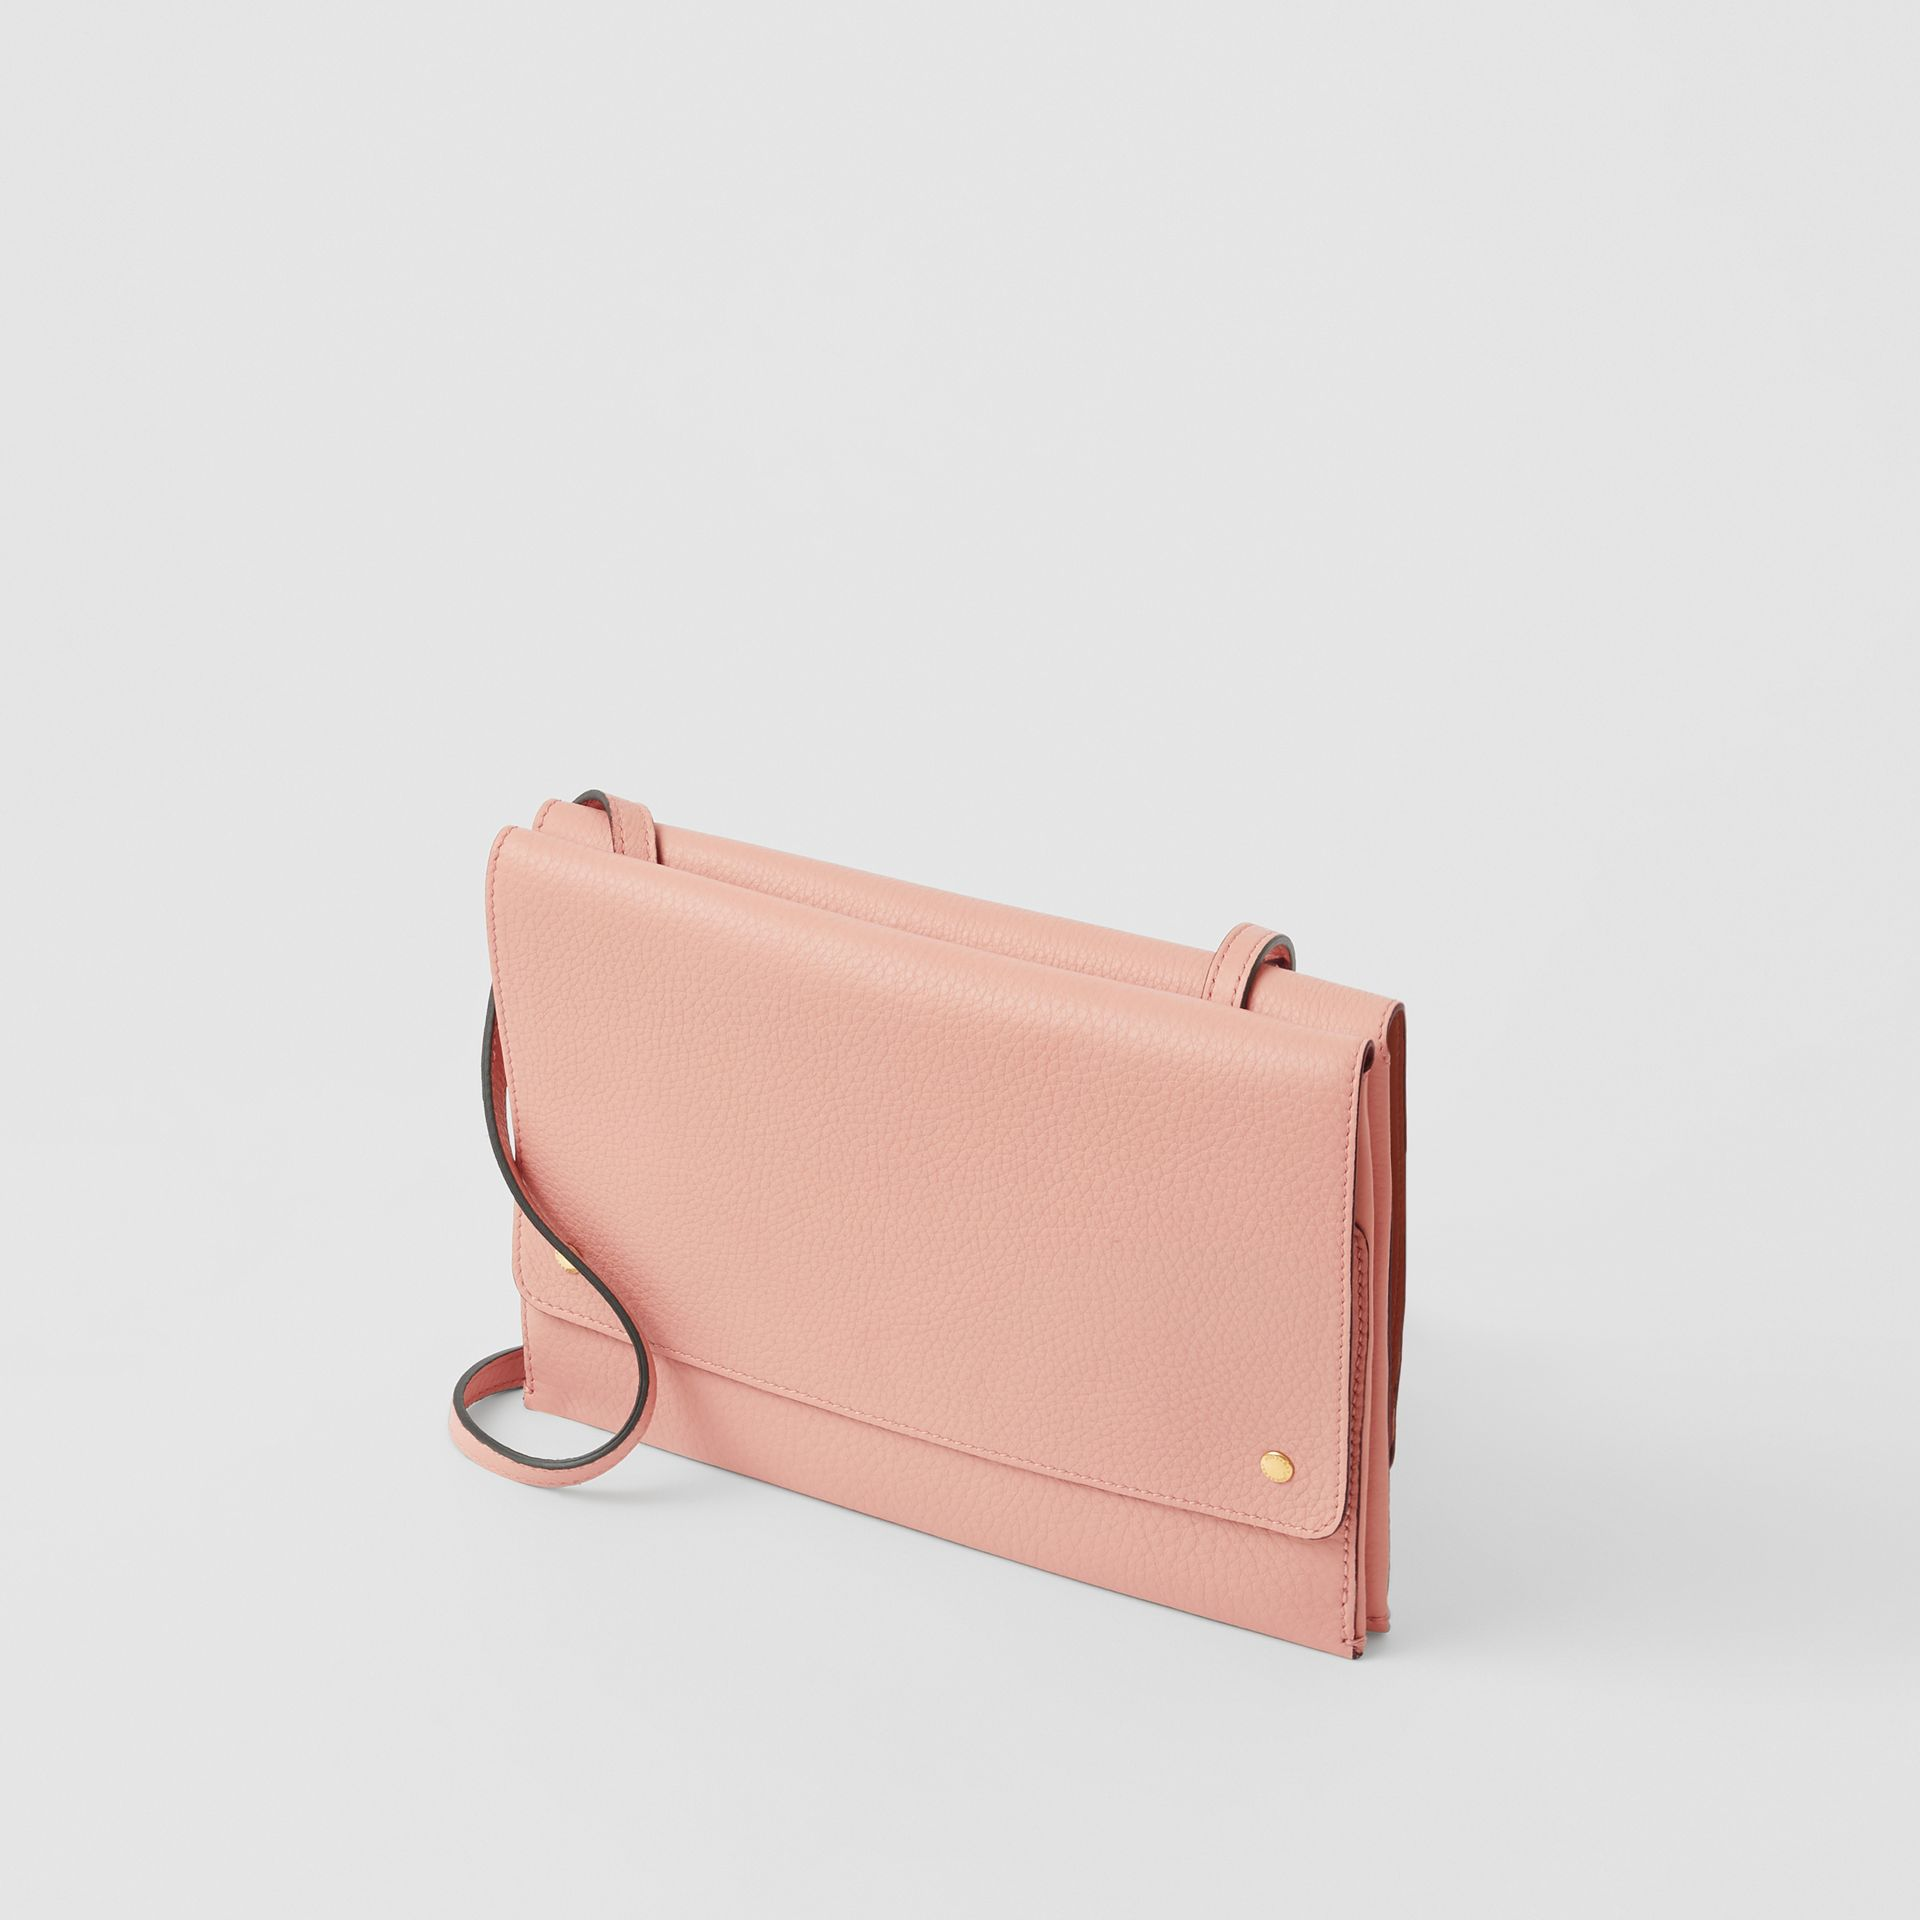 Leather Envelope Crossbody Bag in Ash Rose - Women | Burberry United States - gallery image 4